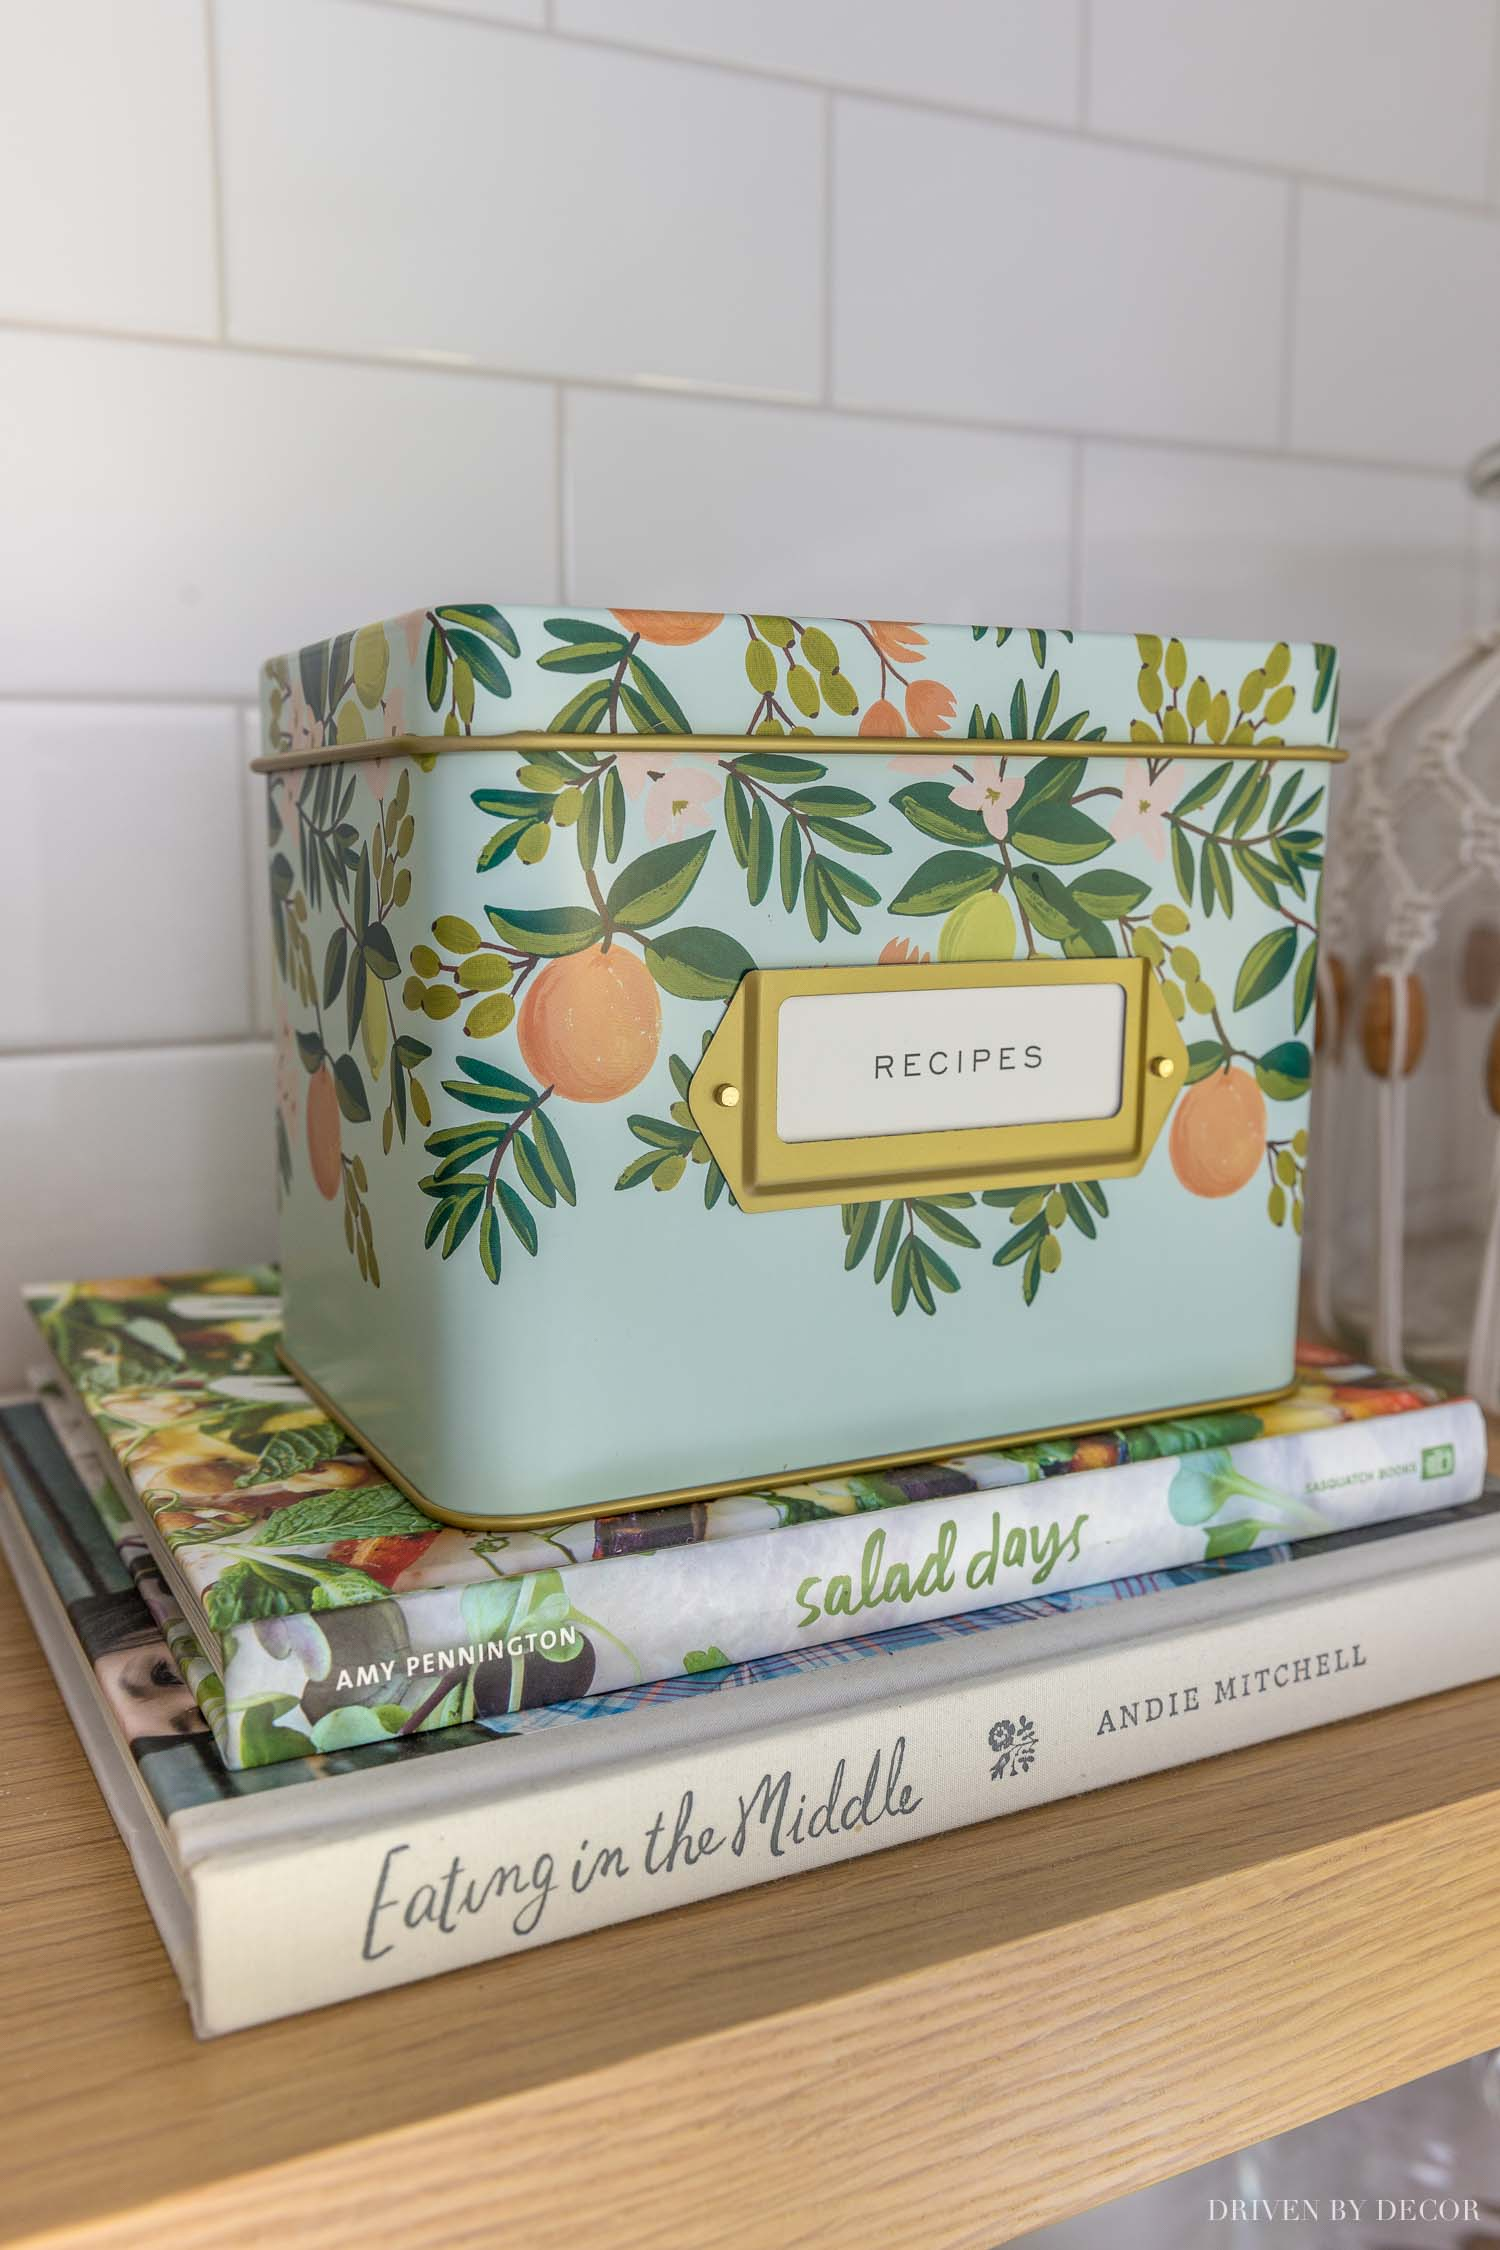 The cutest recipe tin that is perfect for storing small kitchen accessories!